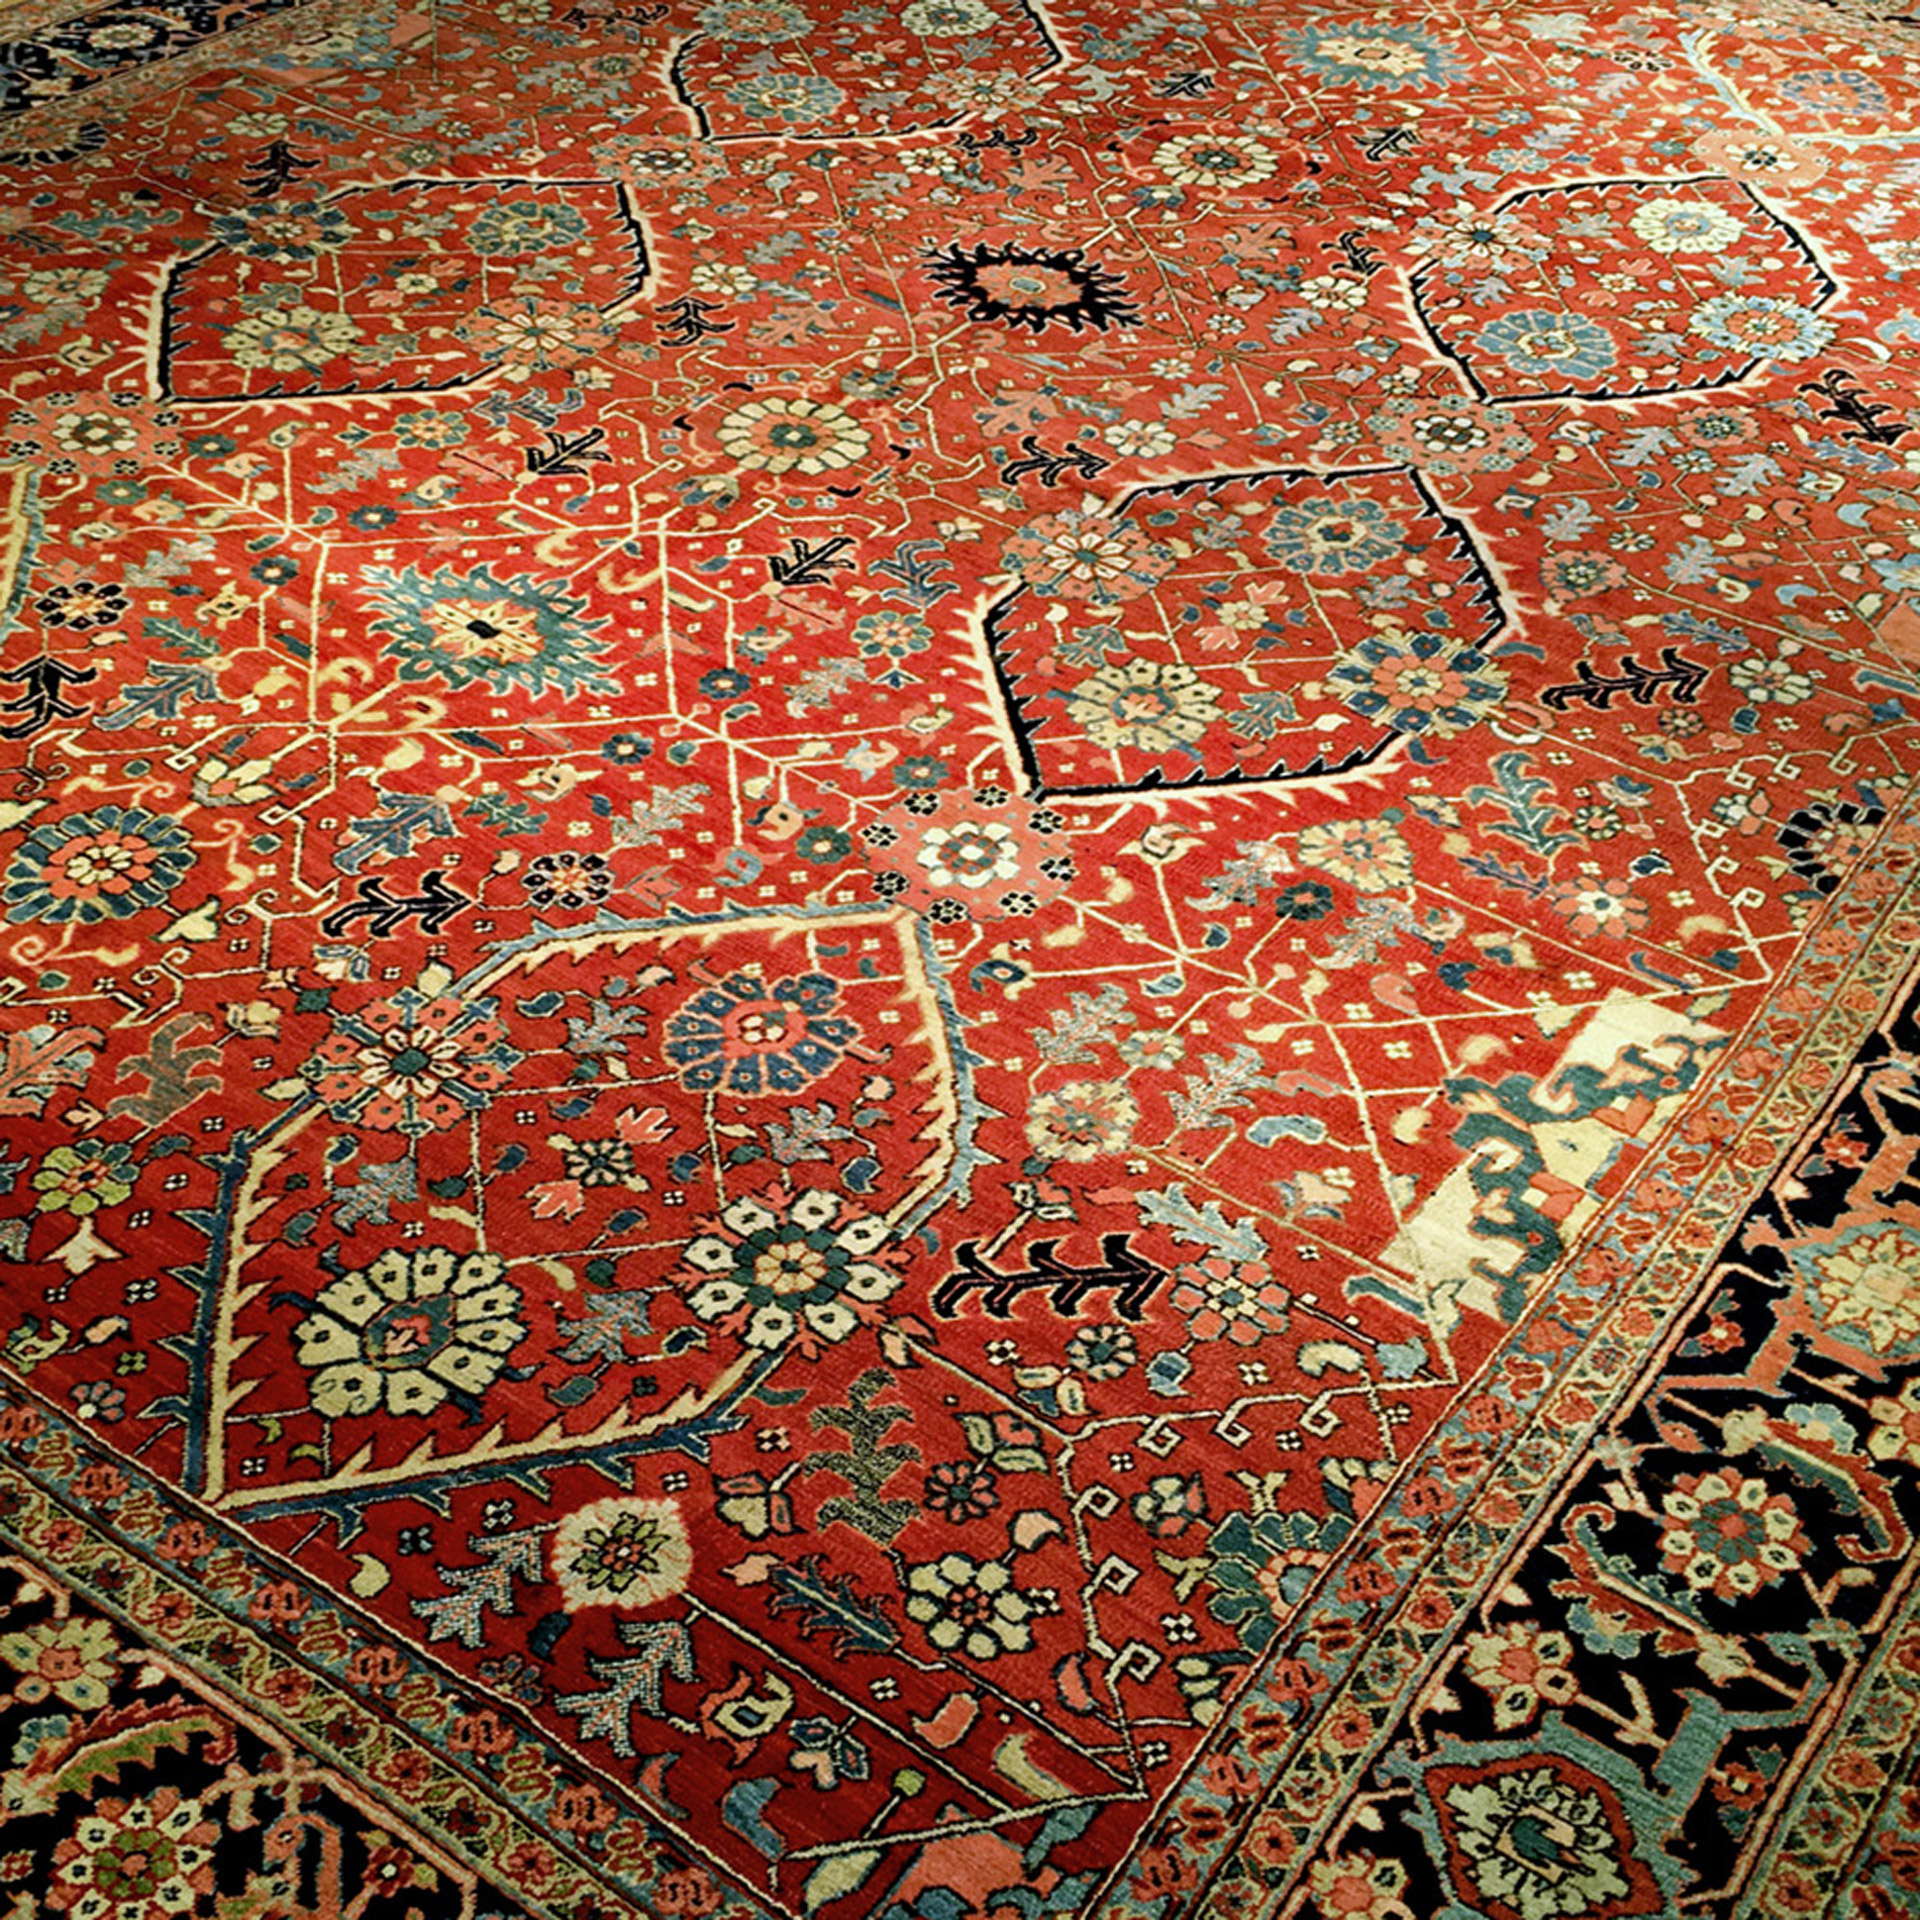 Antique Persian Heriz Serapi carpet with a lattice design on a brick red field that is framed by a navy border